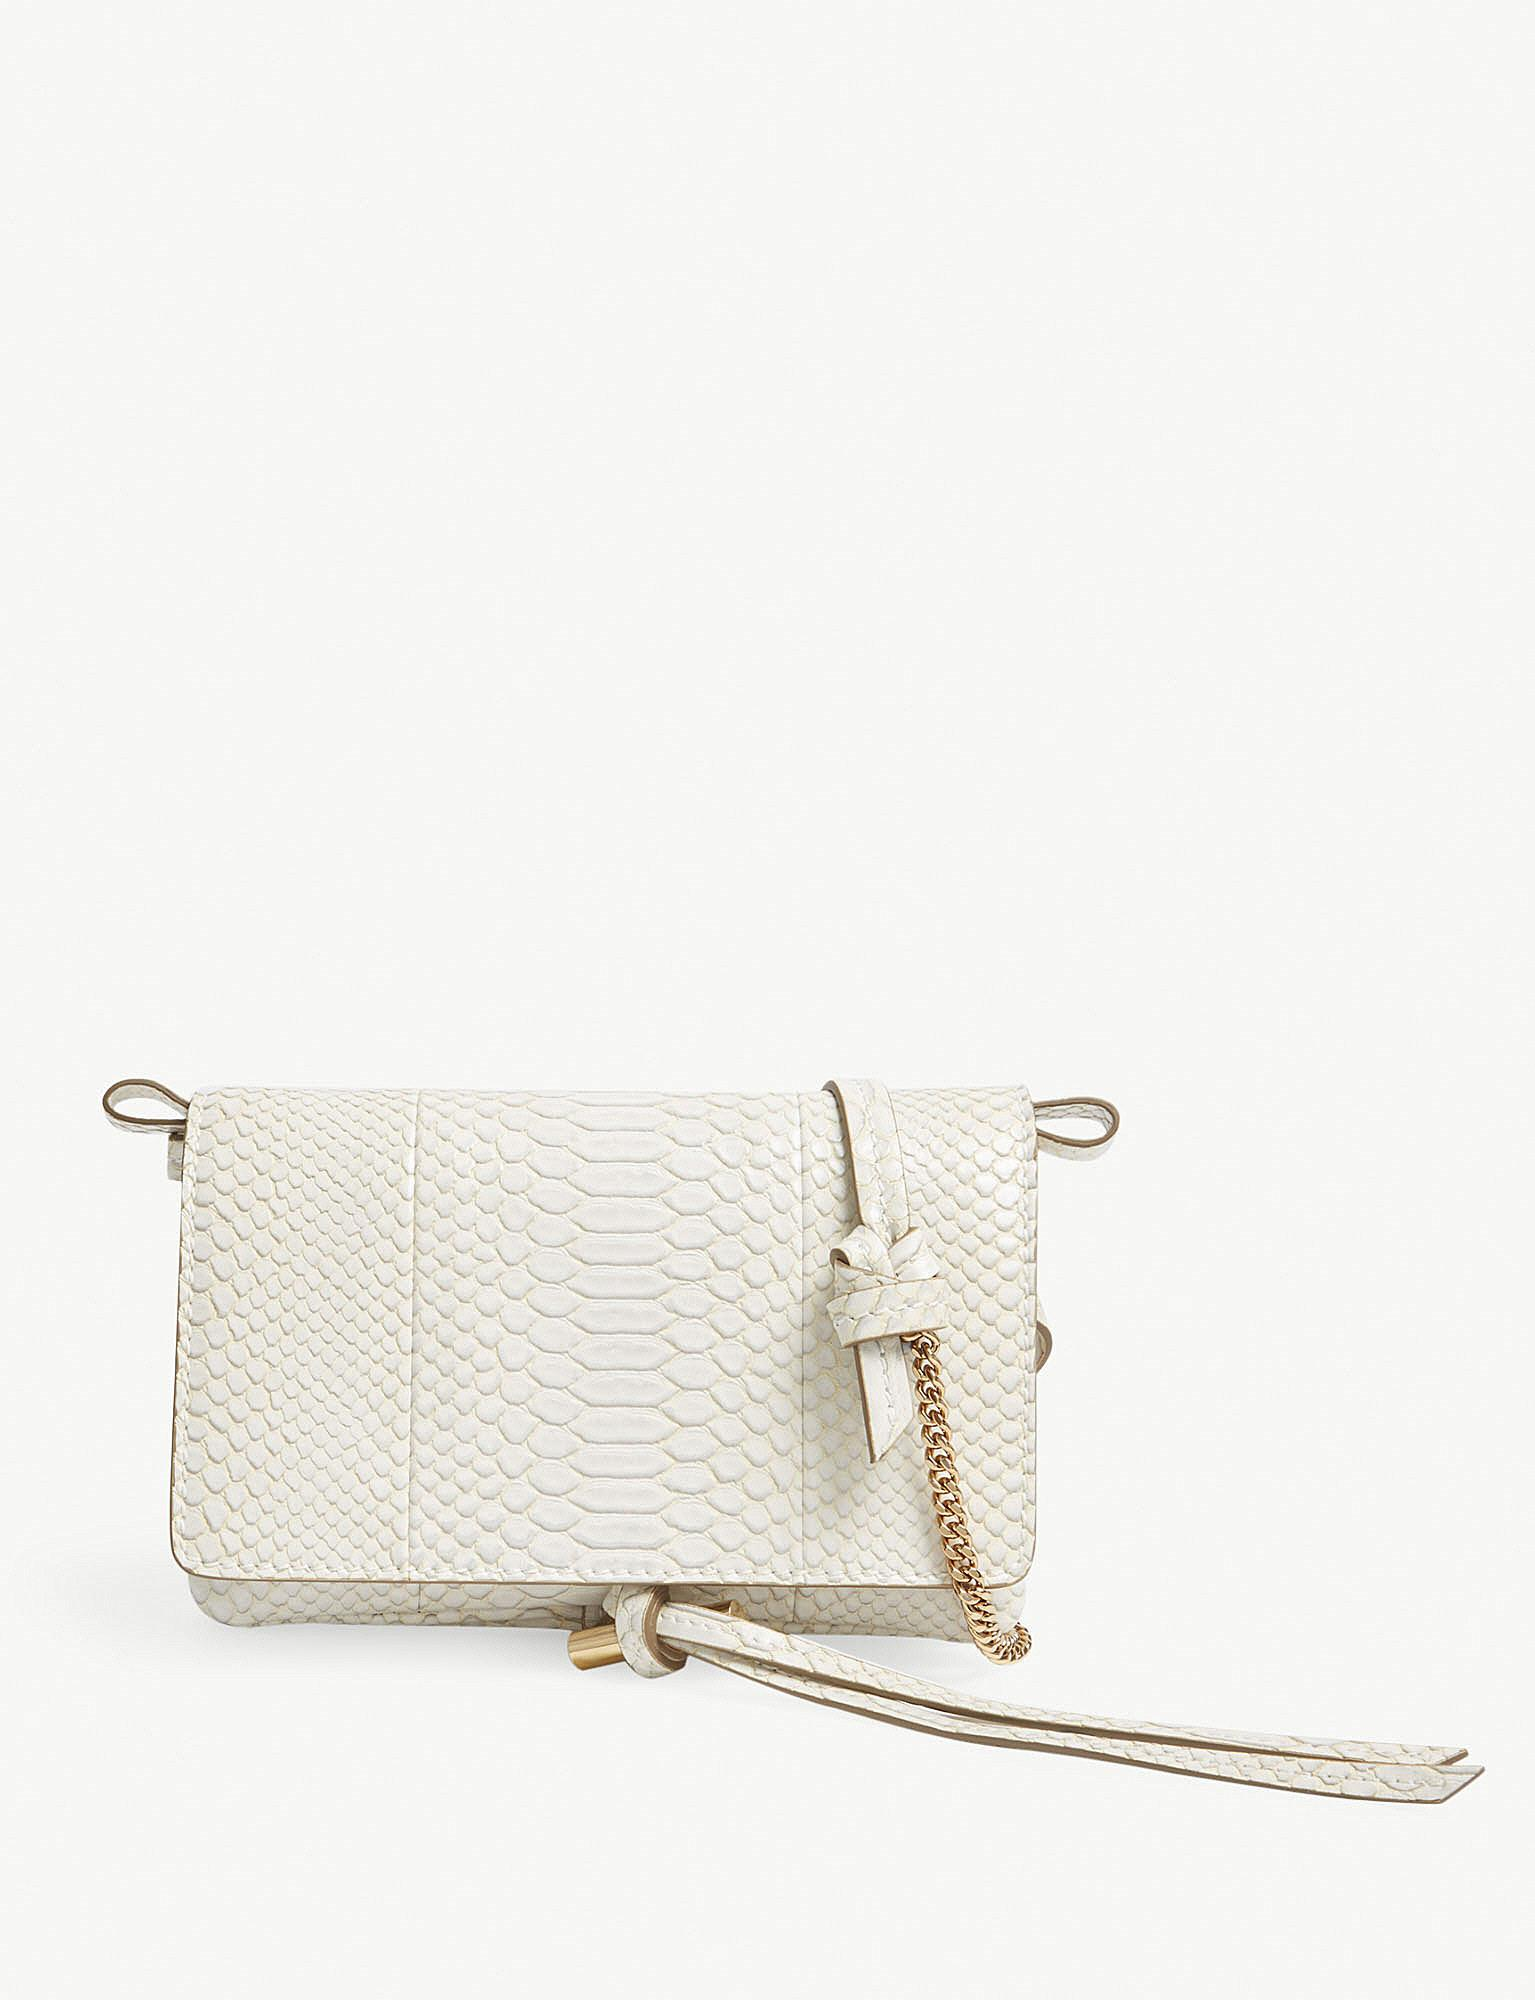 9bcbad69e42f Stella McCartney Flo Small Faux-leather Mini Shoulder Bag in White ...